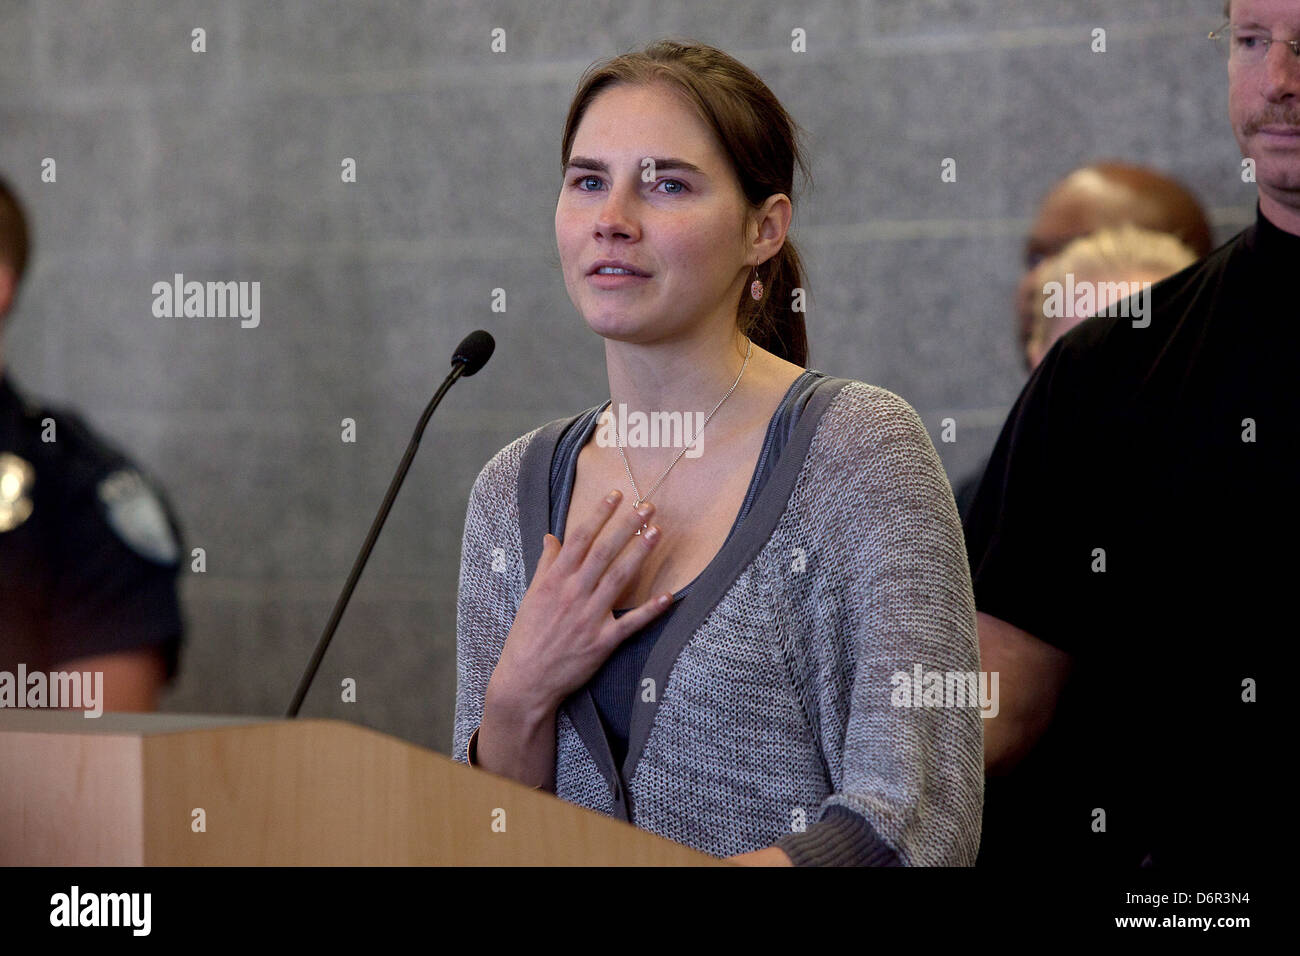 amanda knox and the media Because of how she was treated by italian authorities and what she said was unfair media bias, knox created the scarlet letter reports to help women who had the context of their truth taken away .